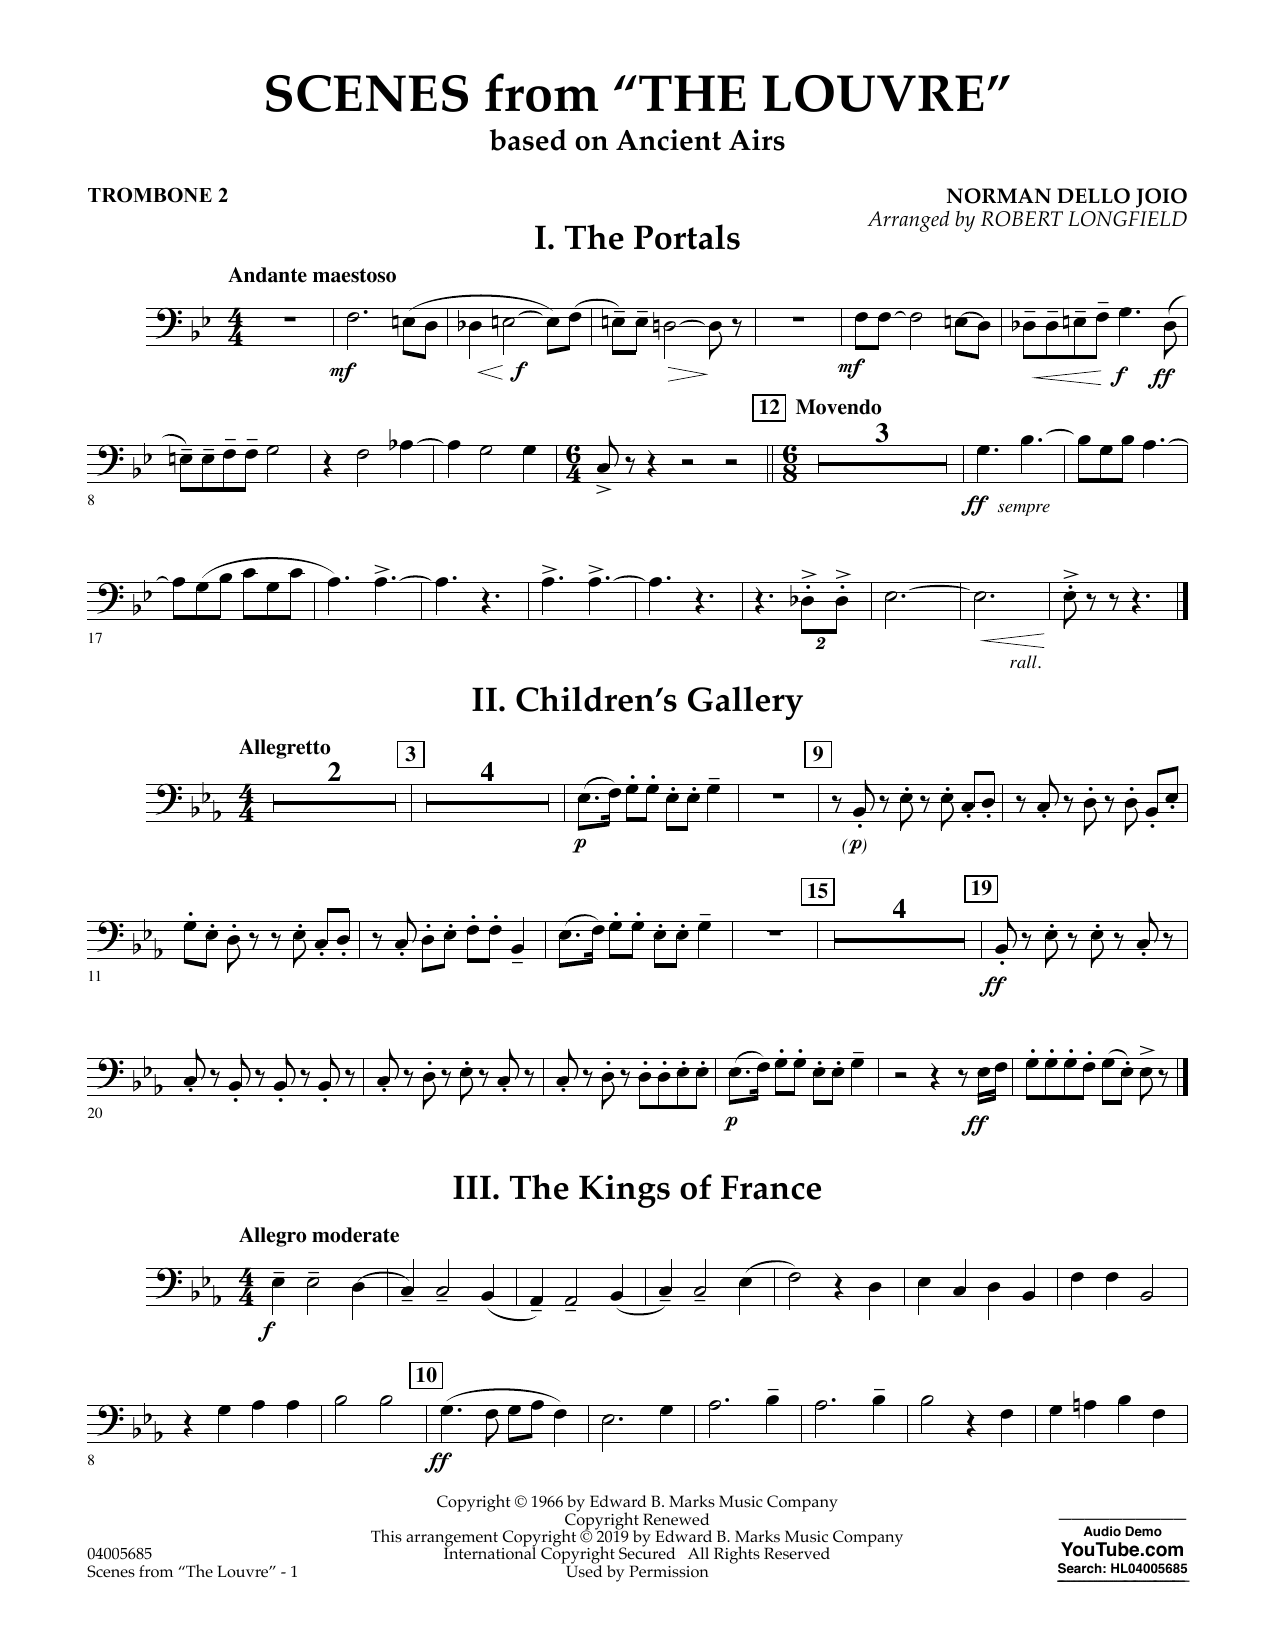 Norman Dello Joio Scenes from the Louvre (arr. Robert Longfield) - Trombone 2 sheet music preview music notes and score for Concert Band including 2 page(s)